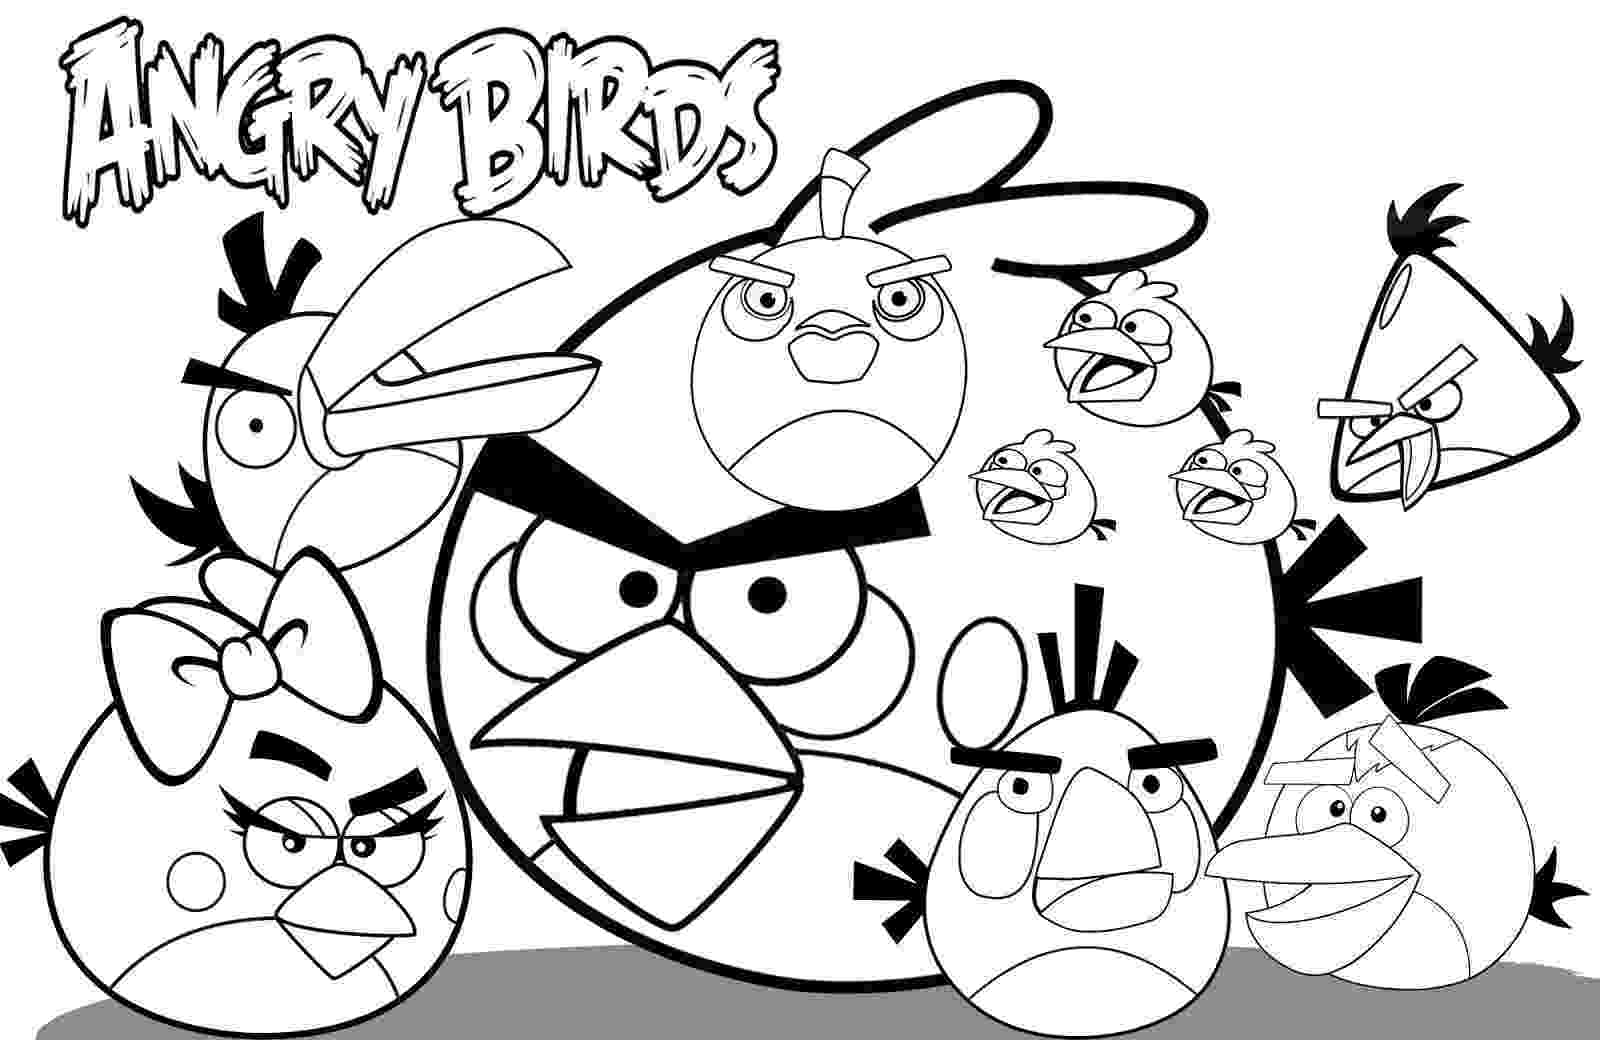 free printable bird coloring pages free printable tweety bird coloring pages for kids free printable bird coloring pages